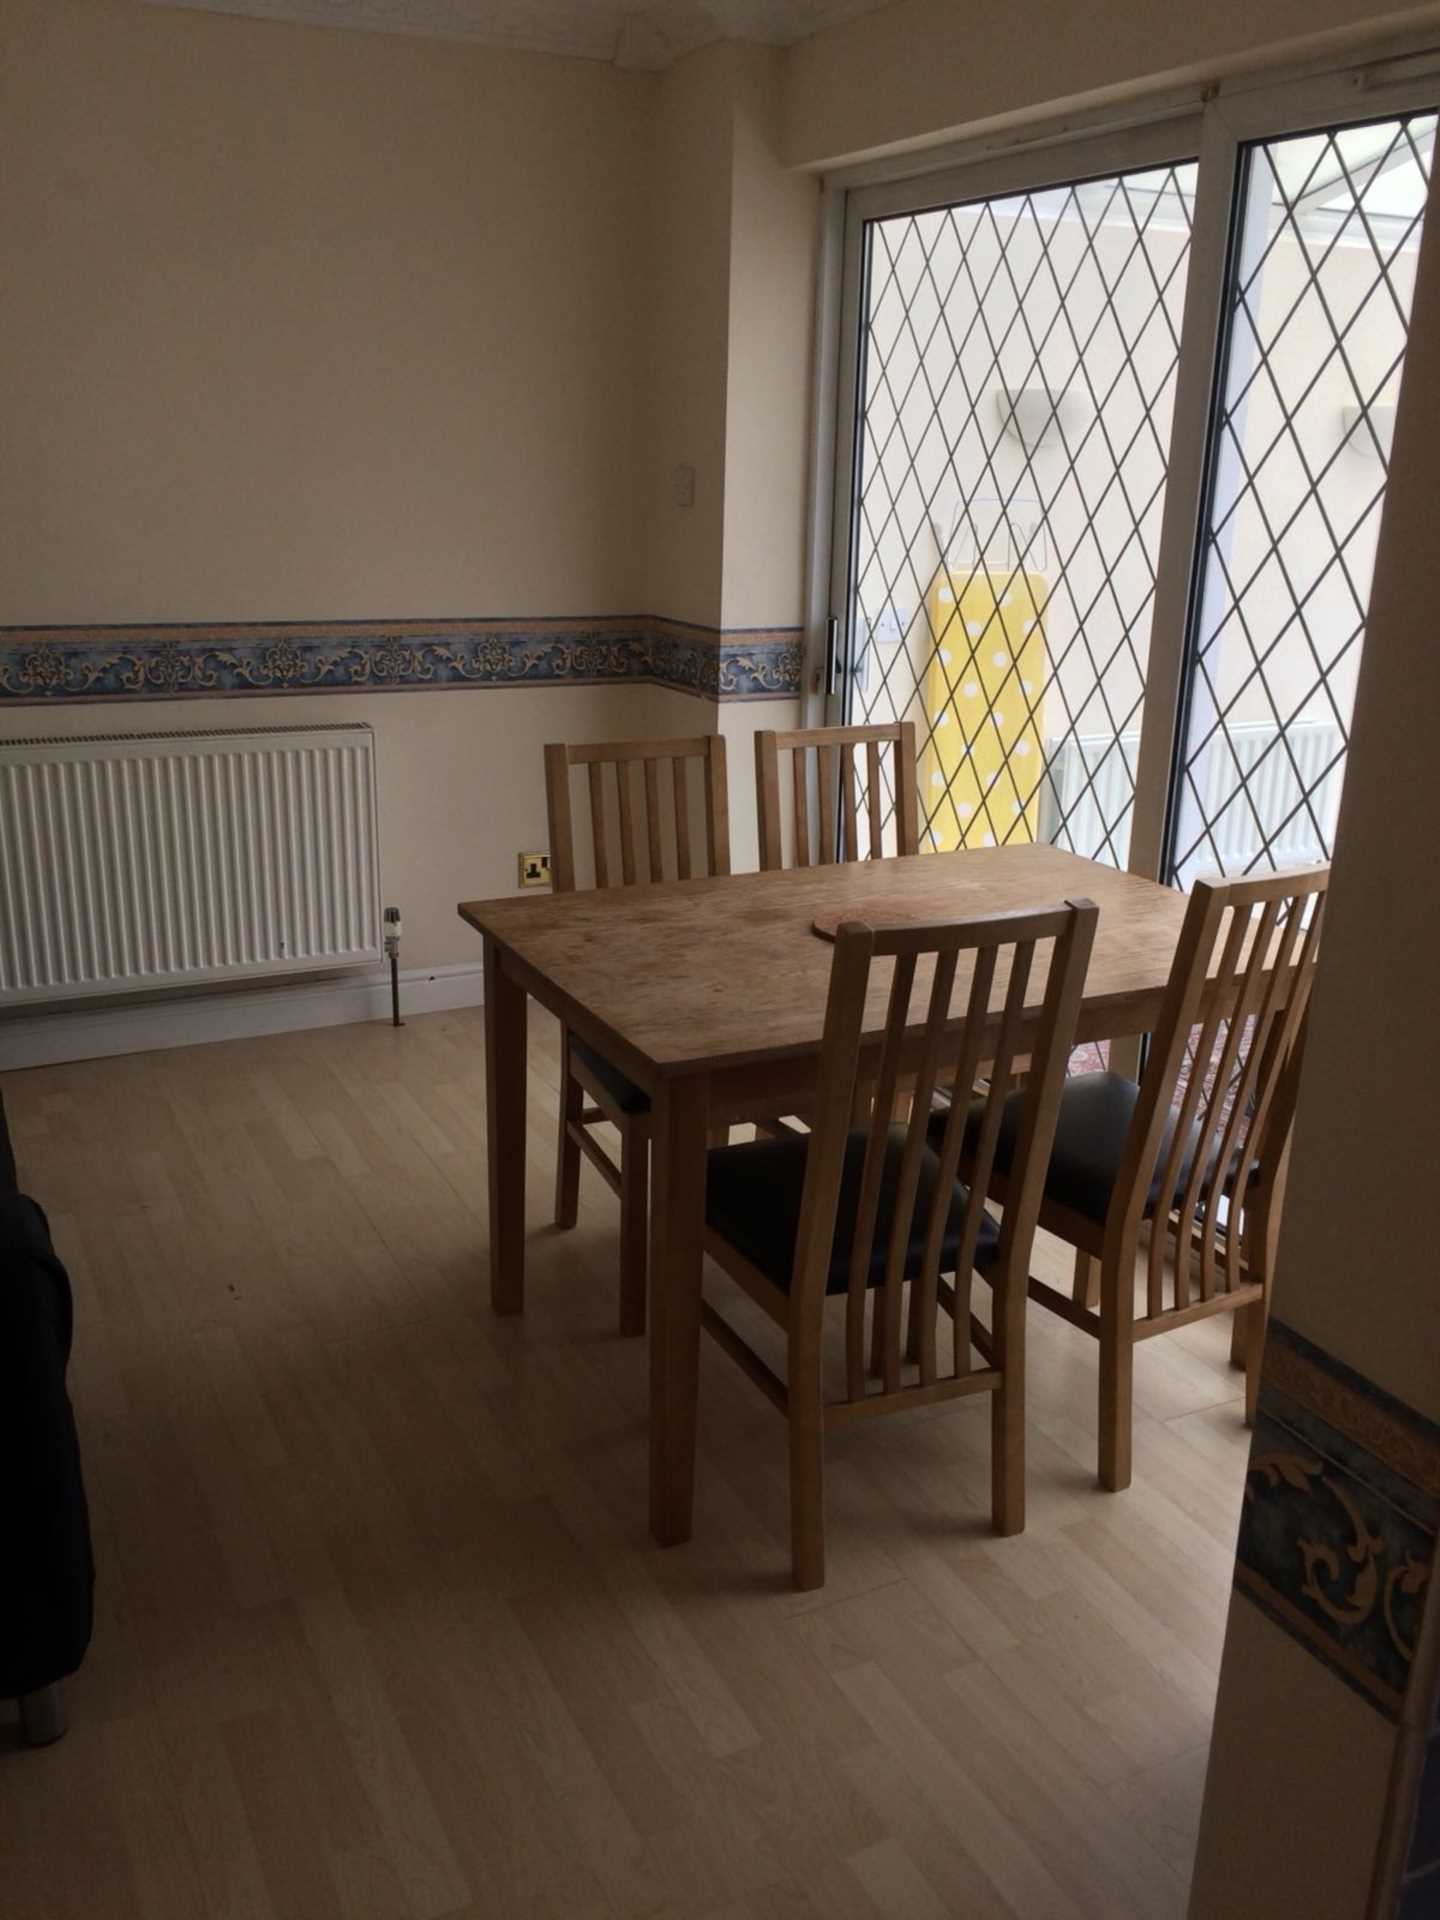 Room 1, Queensland Avenue - 5 bedroom 2 bathroom student home fully furnished, WIFI & bills included - NO FEES, Image 5